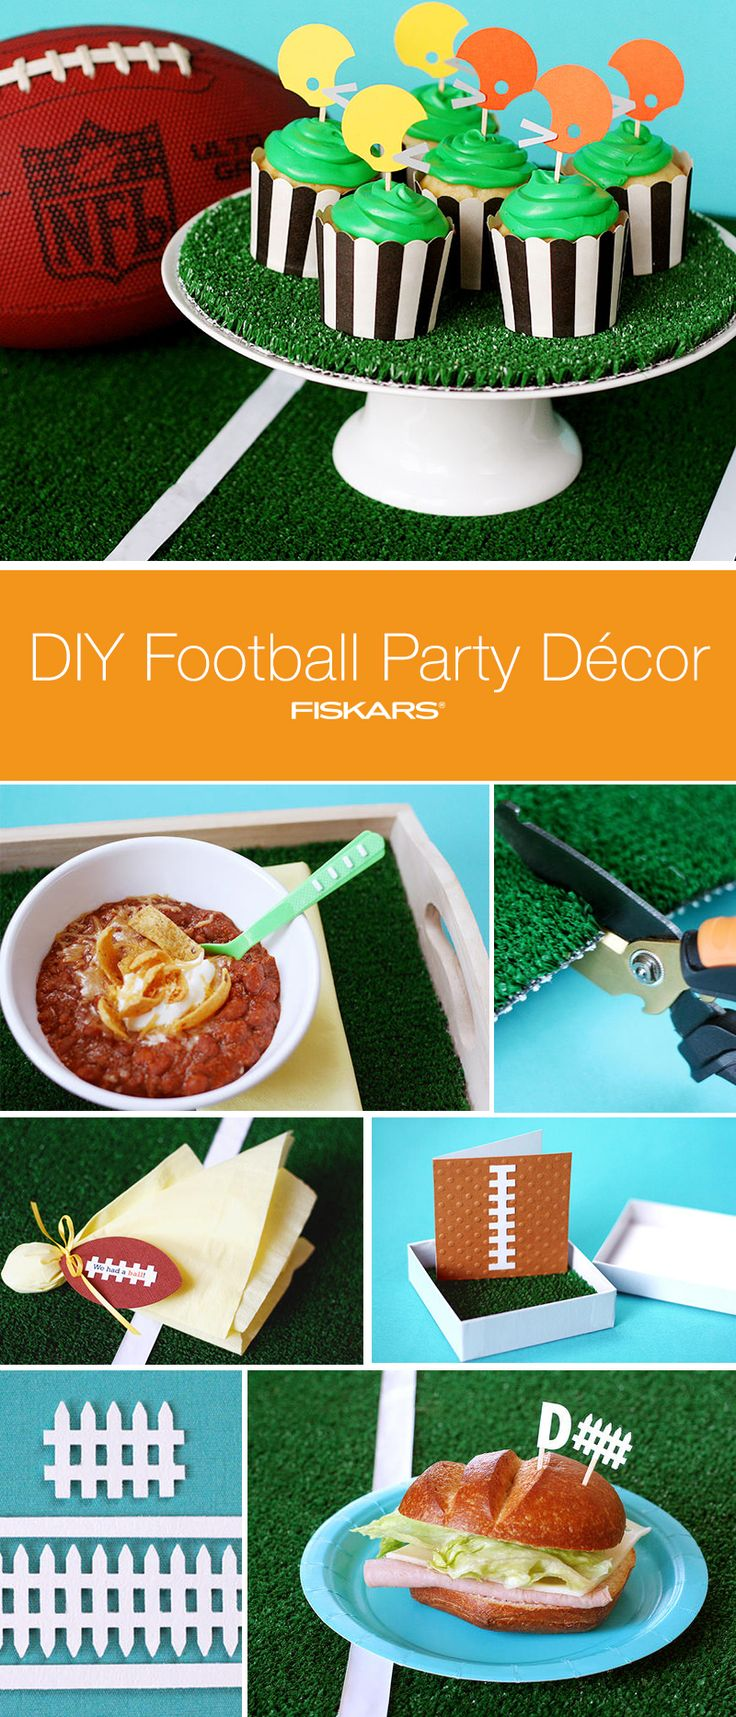 Plan your football party with these easy-to-make DIY decorations. Cheer on your team in the big game with handmade sports-themed invitations, serving tray liners, football helmet cupcake toppers, defense sandwich picks and personalized thank you notes. http://www2.fiskars.com/Ideas-and-How-Tos/Crafting-and-Sewing/Parties-and-Entertaining/Super-Bowl-Party?utm_source=Pinterest&utm_medium=Pin%2BDescription&utm_content=2.3.16%2BFootball%2BCupcake&utm_campaign=Hiebing%2BSocial